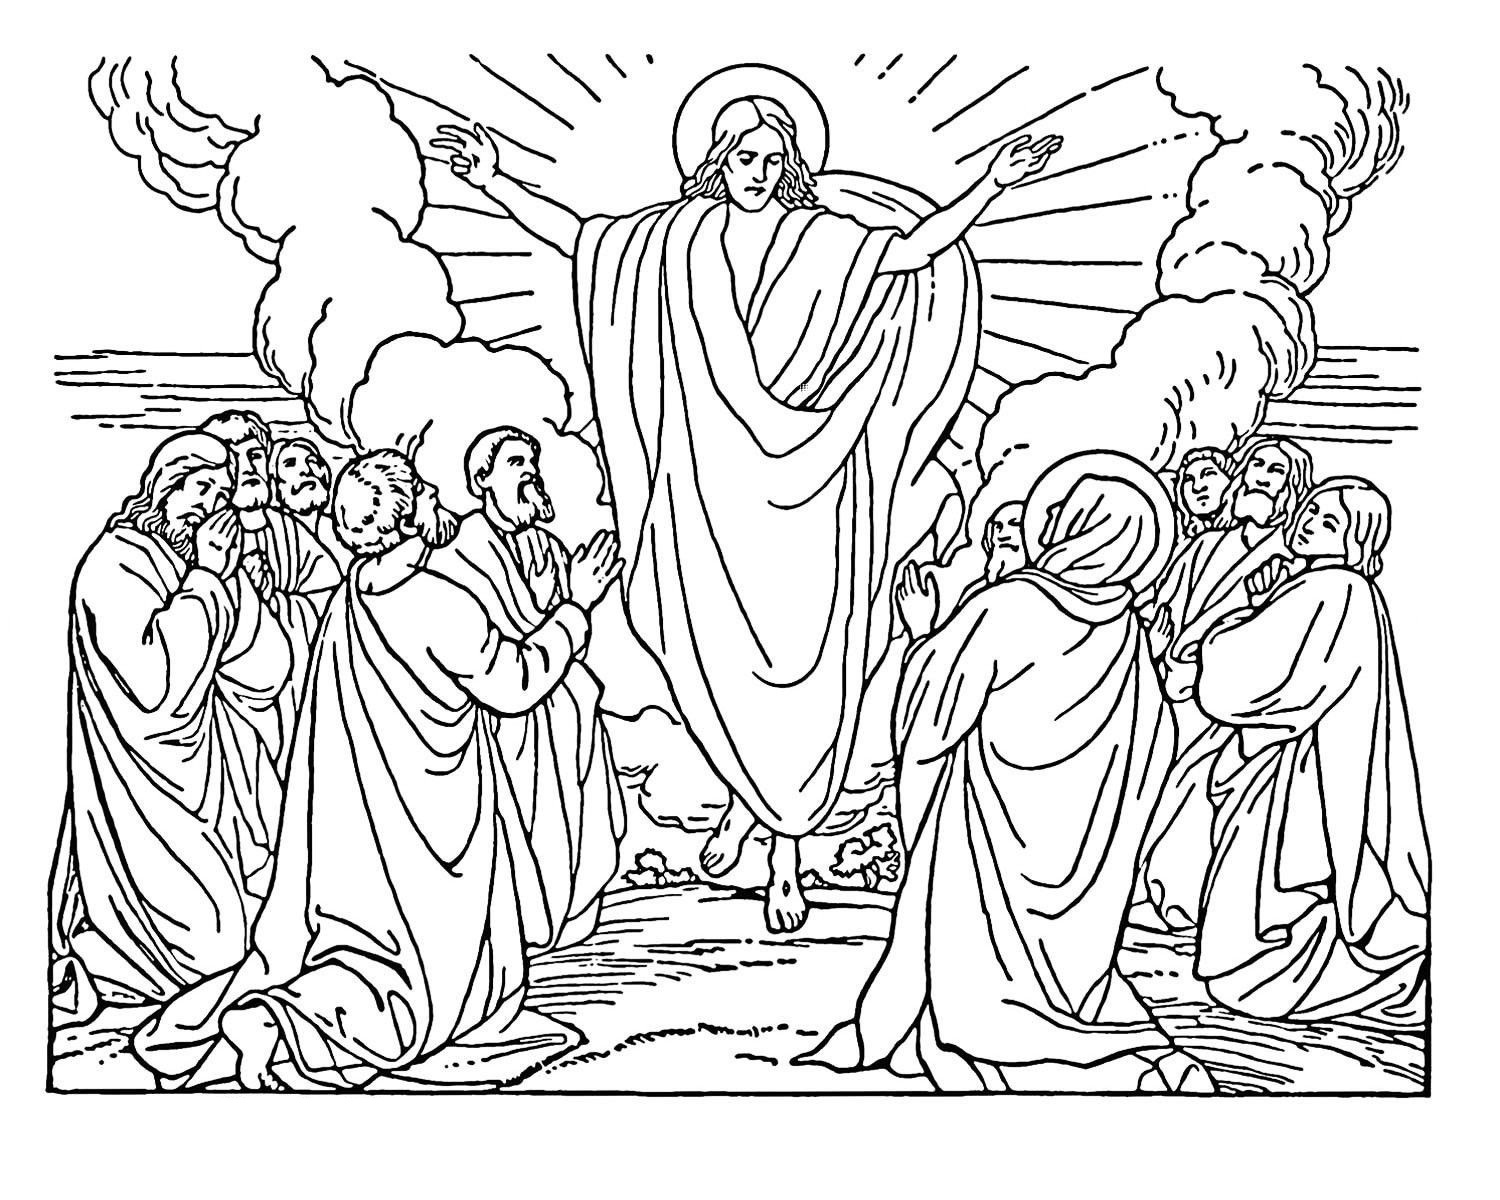 Free printable coloring pages for kids bible - Bible Coloring Pages For Children